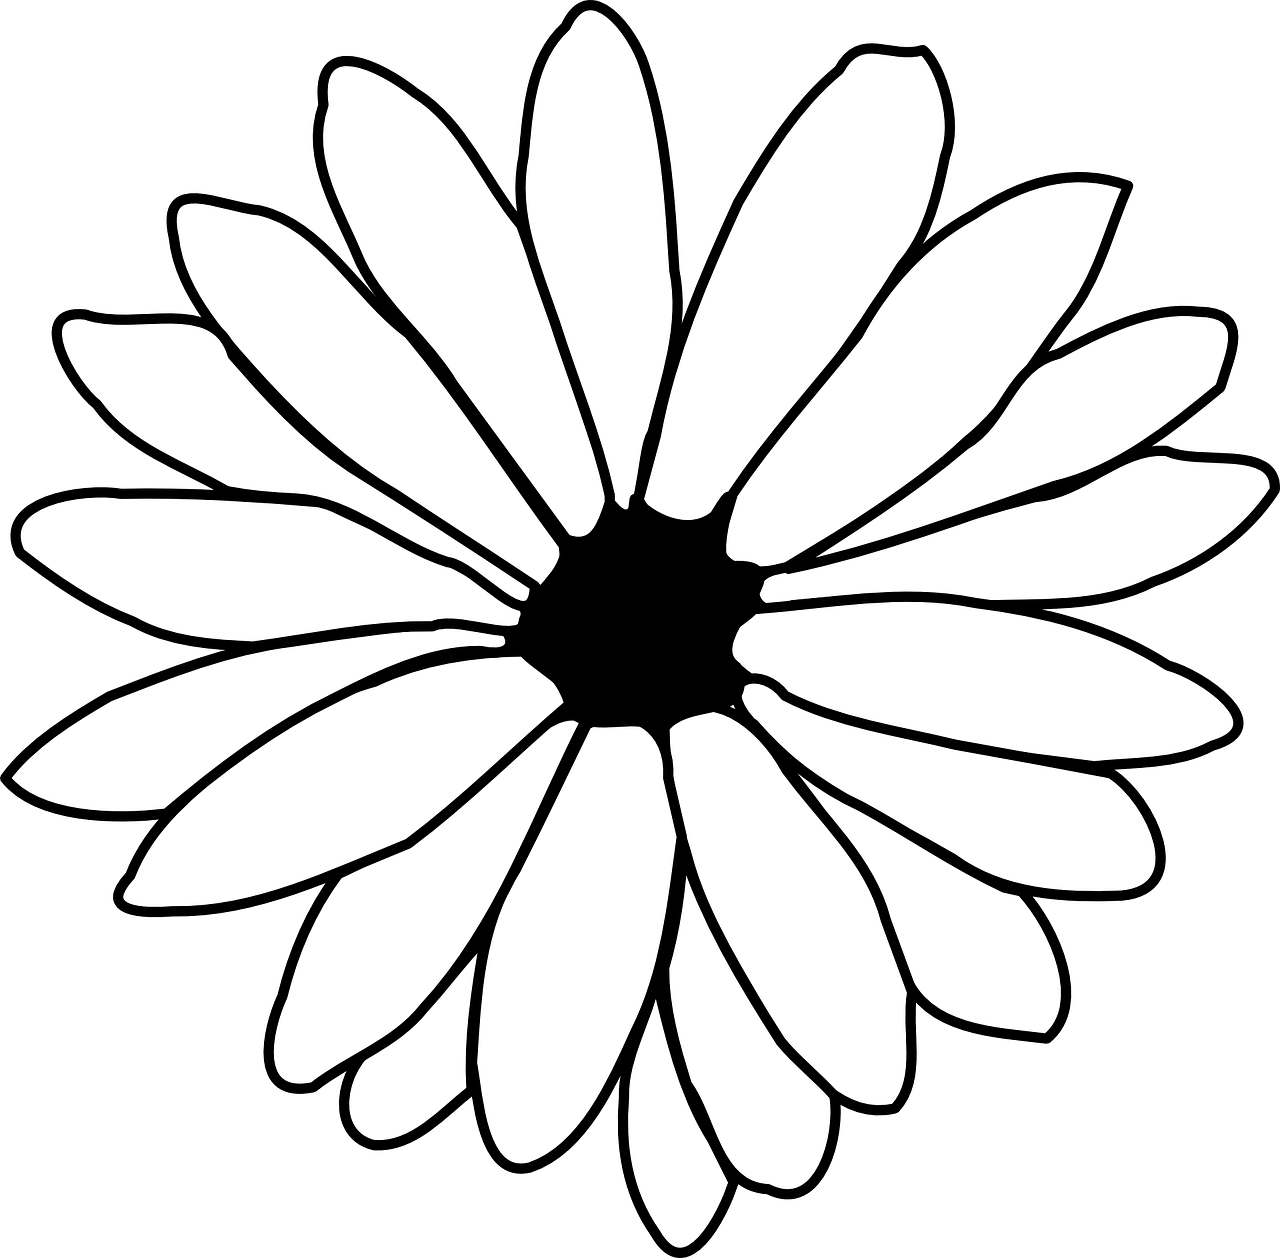 daisy outline black and white free photo